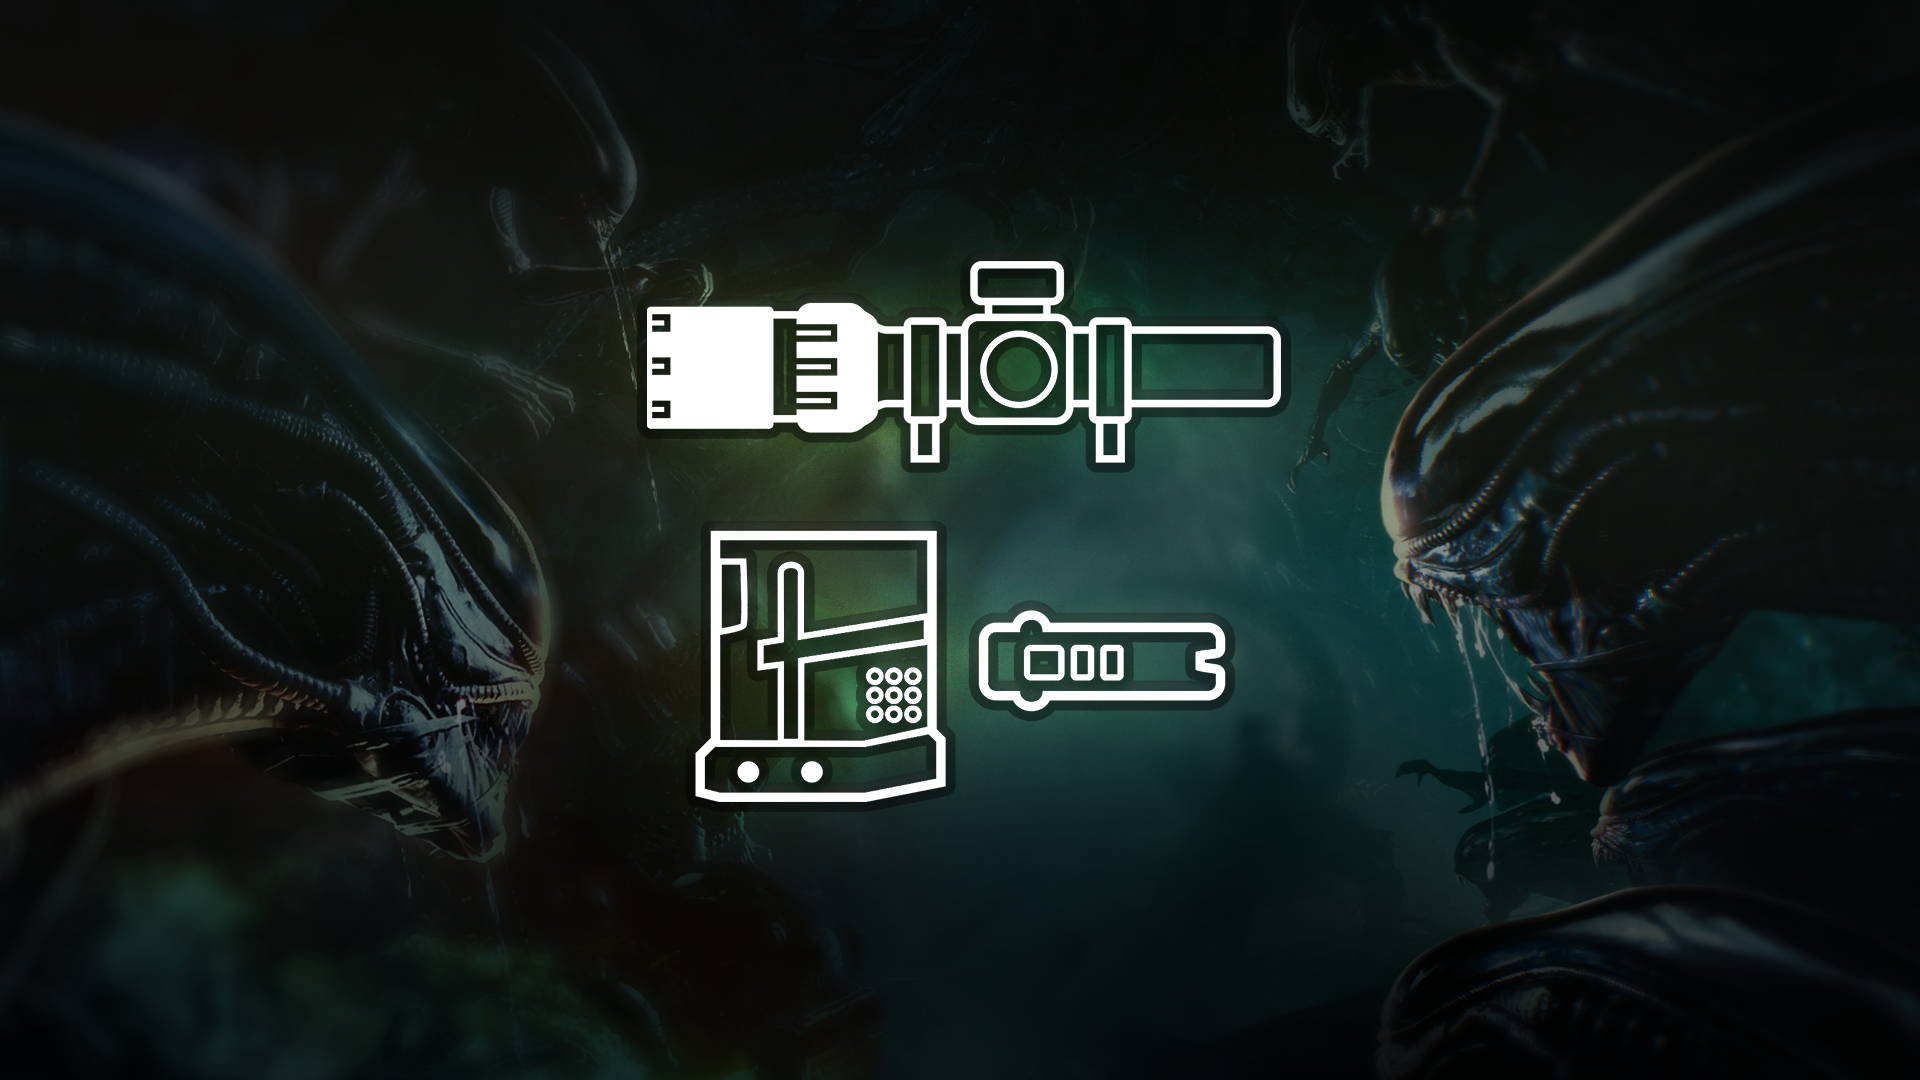 Icon for State of the Art Firepower